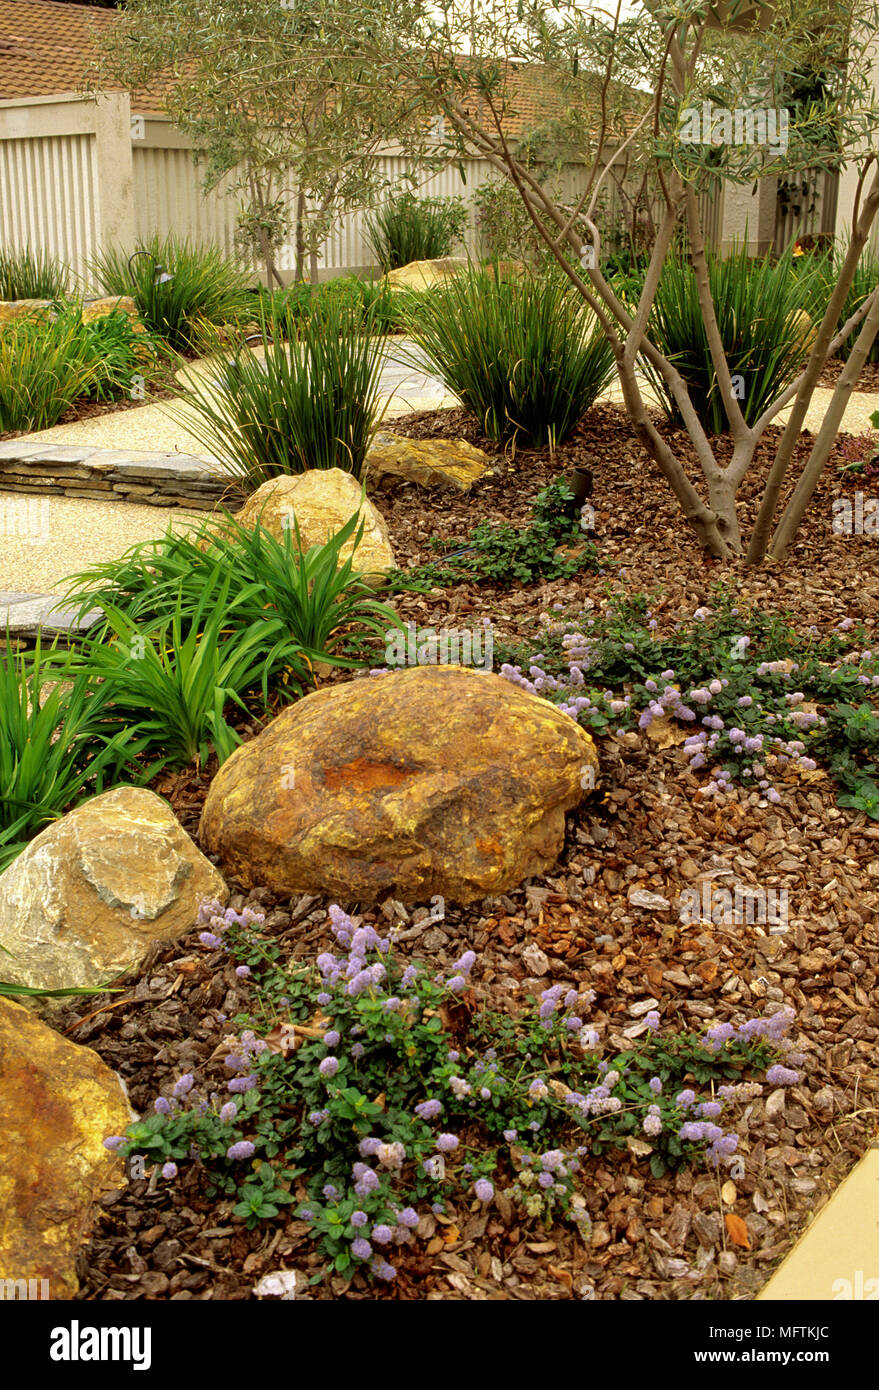 Rock Mulch Stock Photos & Rock Mulch Stock Images - Alamy